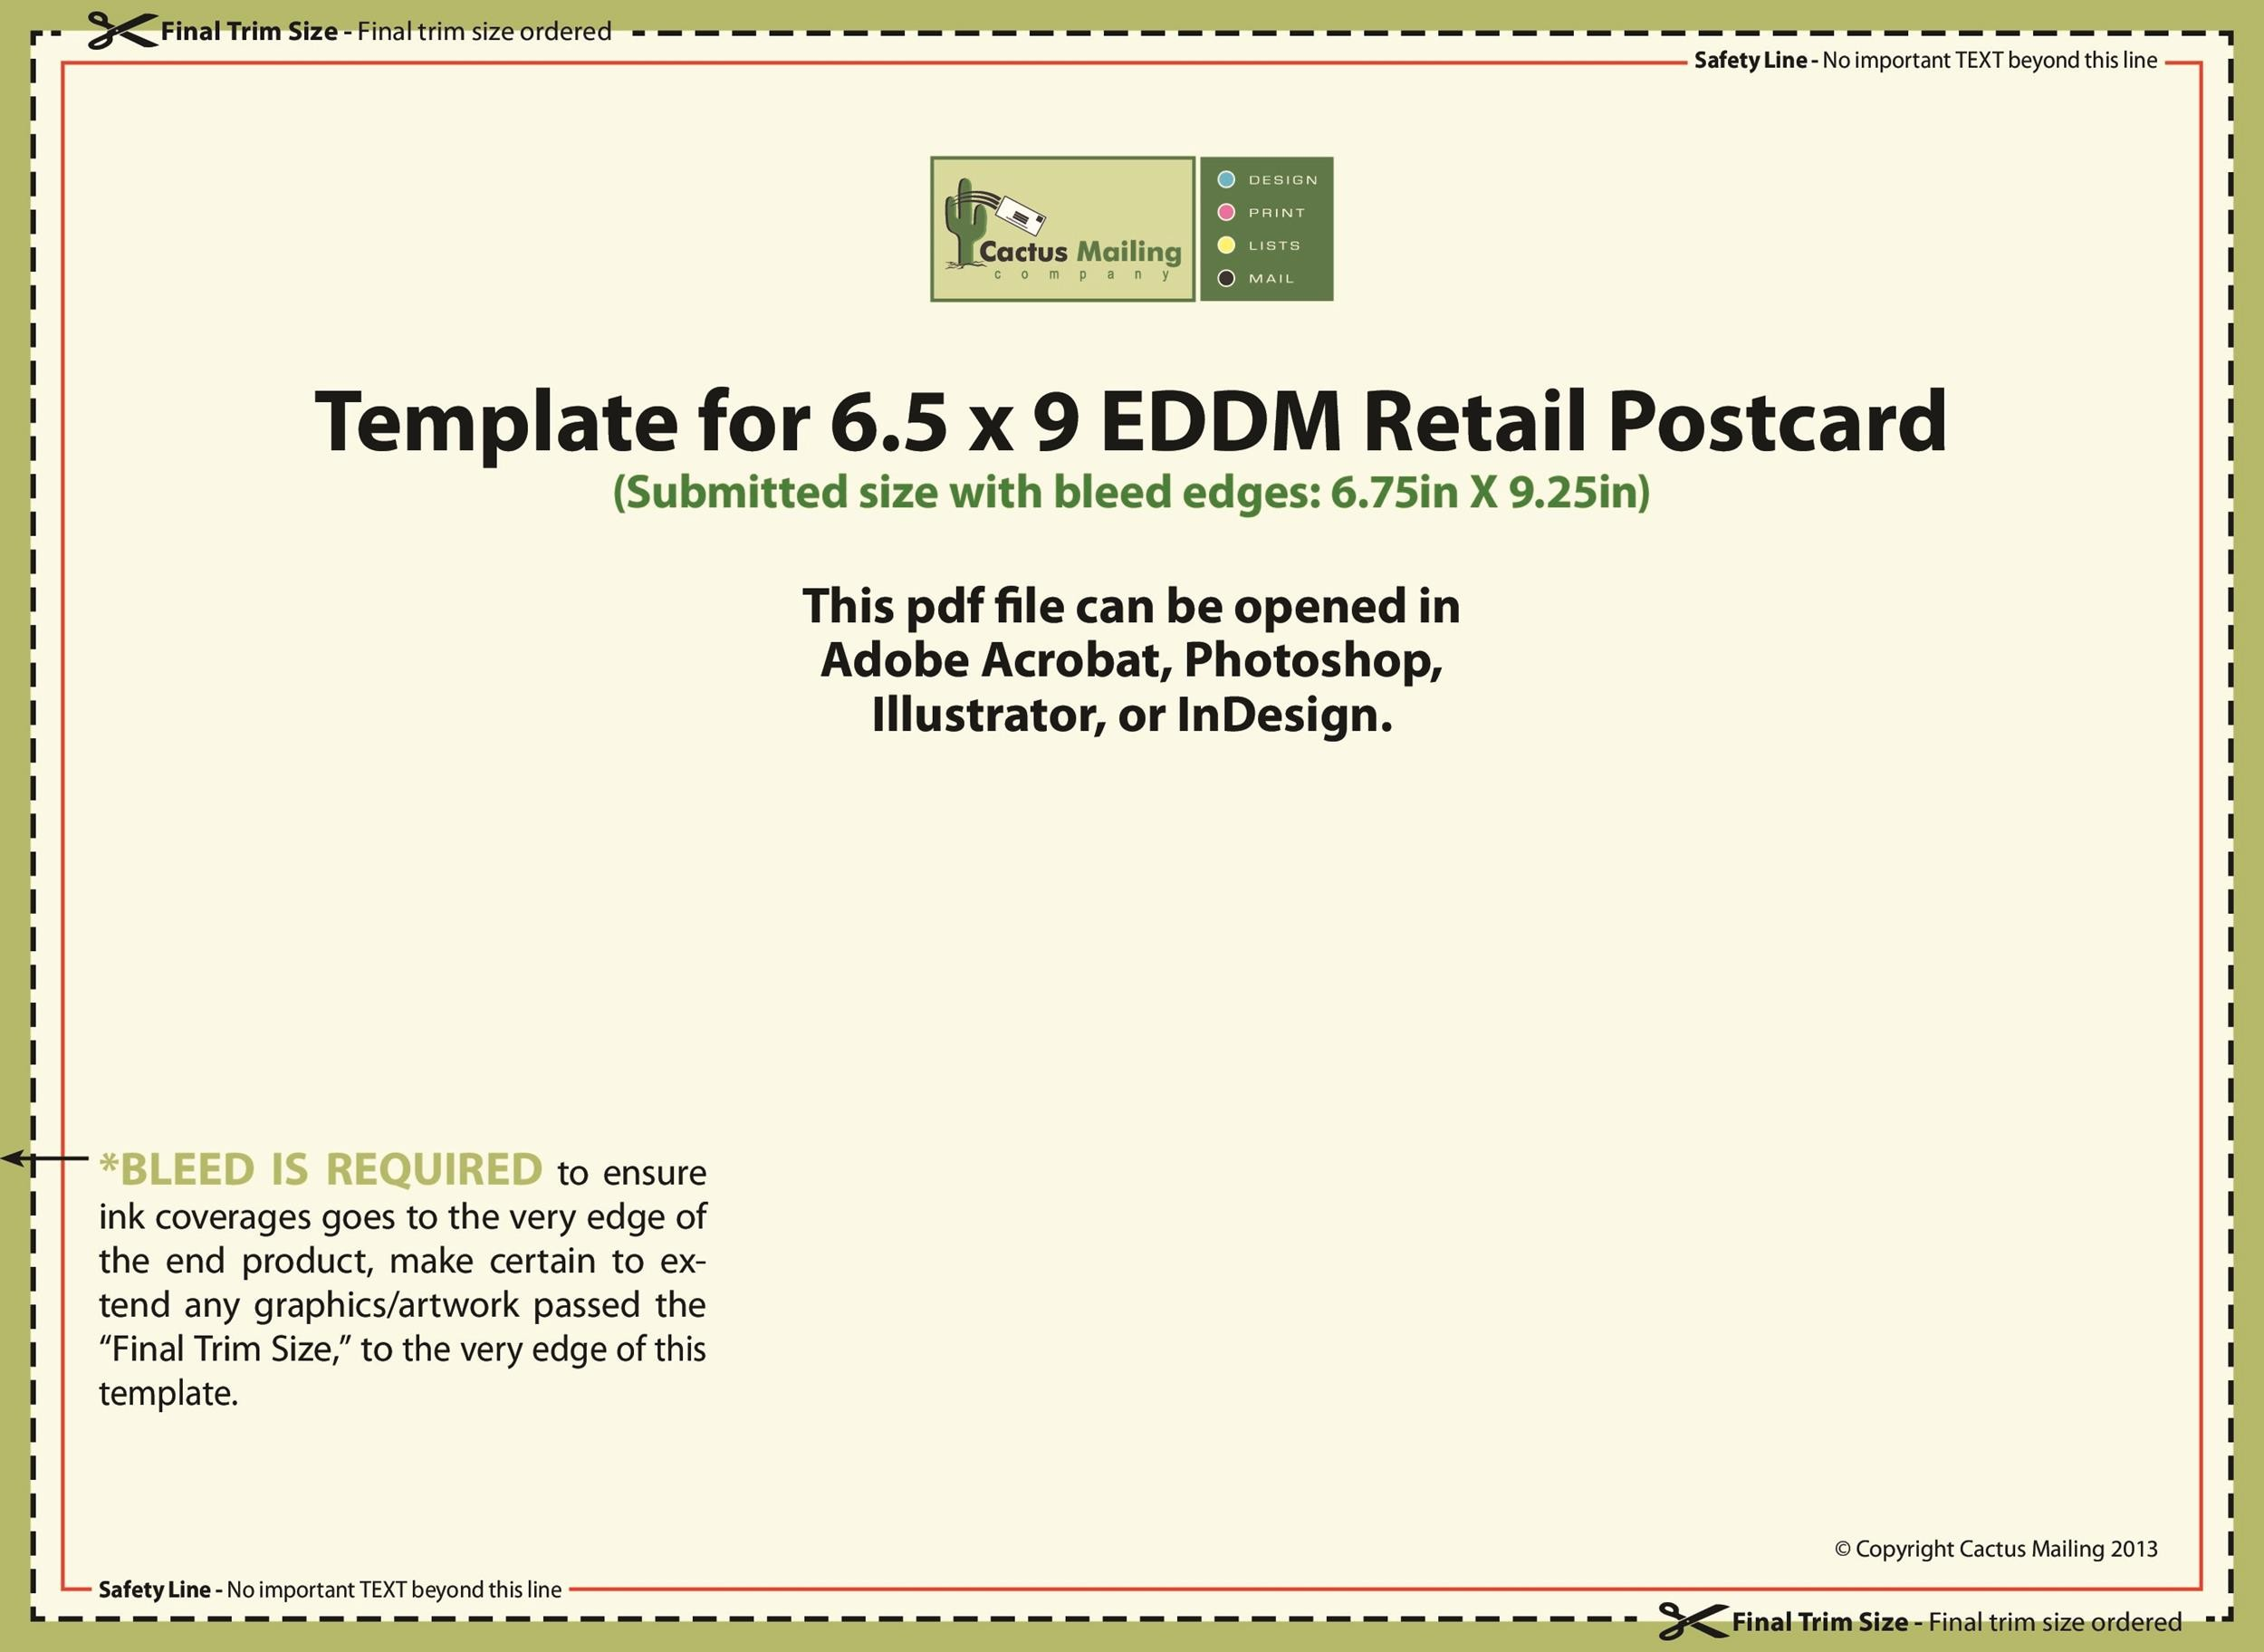 40+ Great Postcard Templates  Designs Word + PDF ᐅ Template Lab